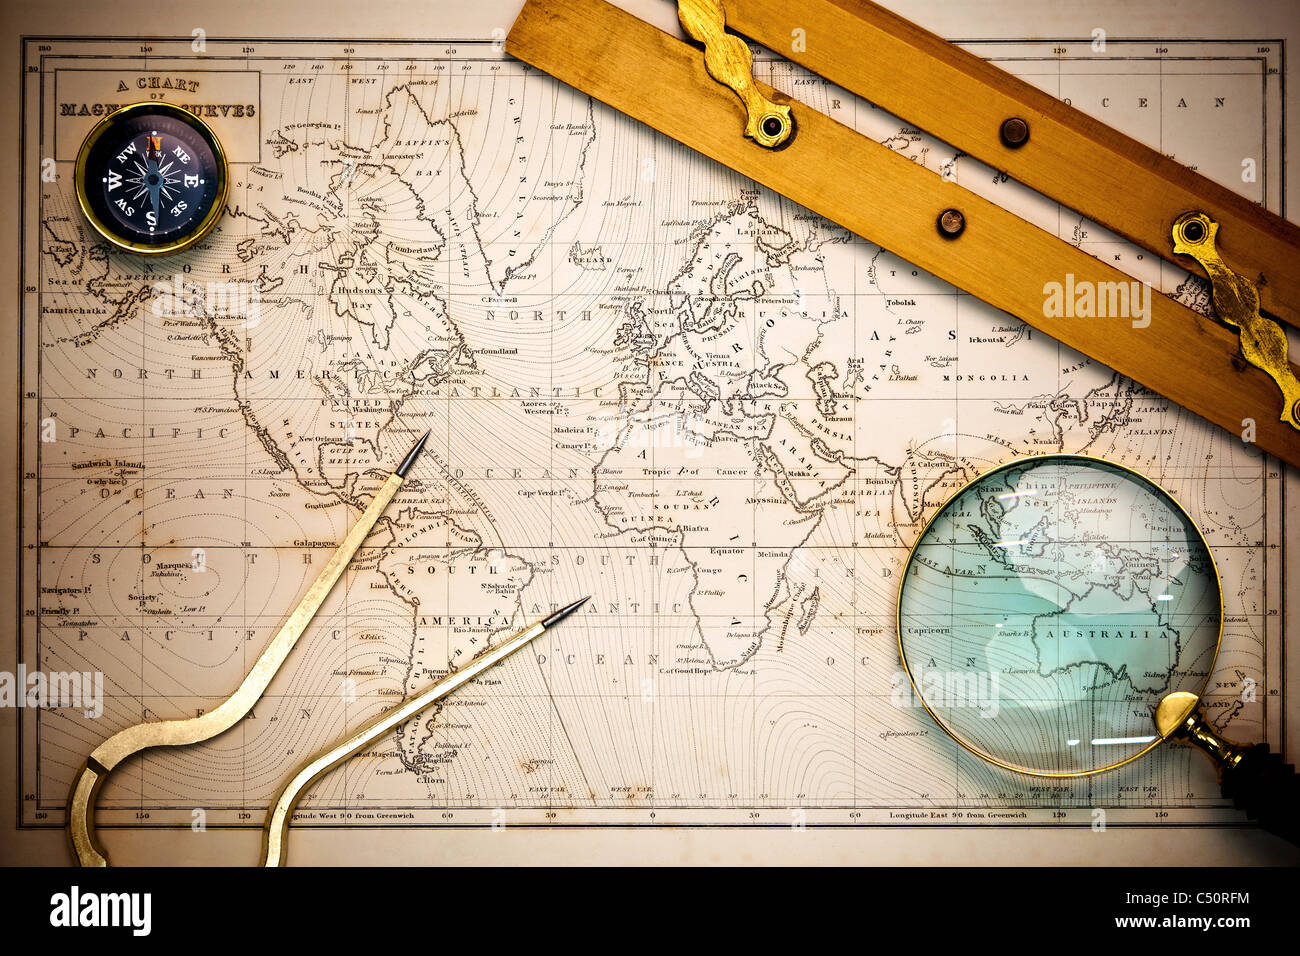 Photo of an old hand drawn 19th century map with navigational objects upon it, with vignetting. - Stock Image